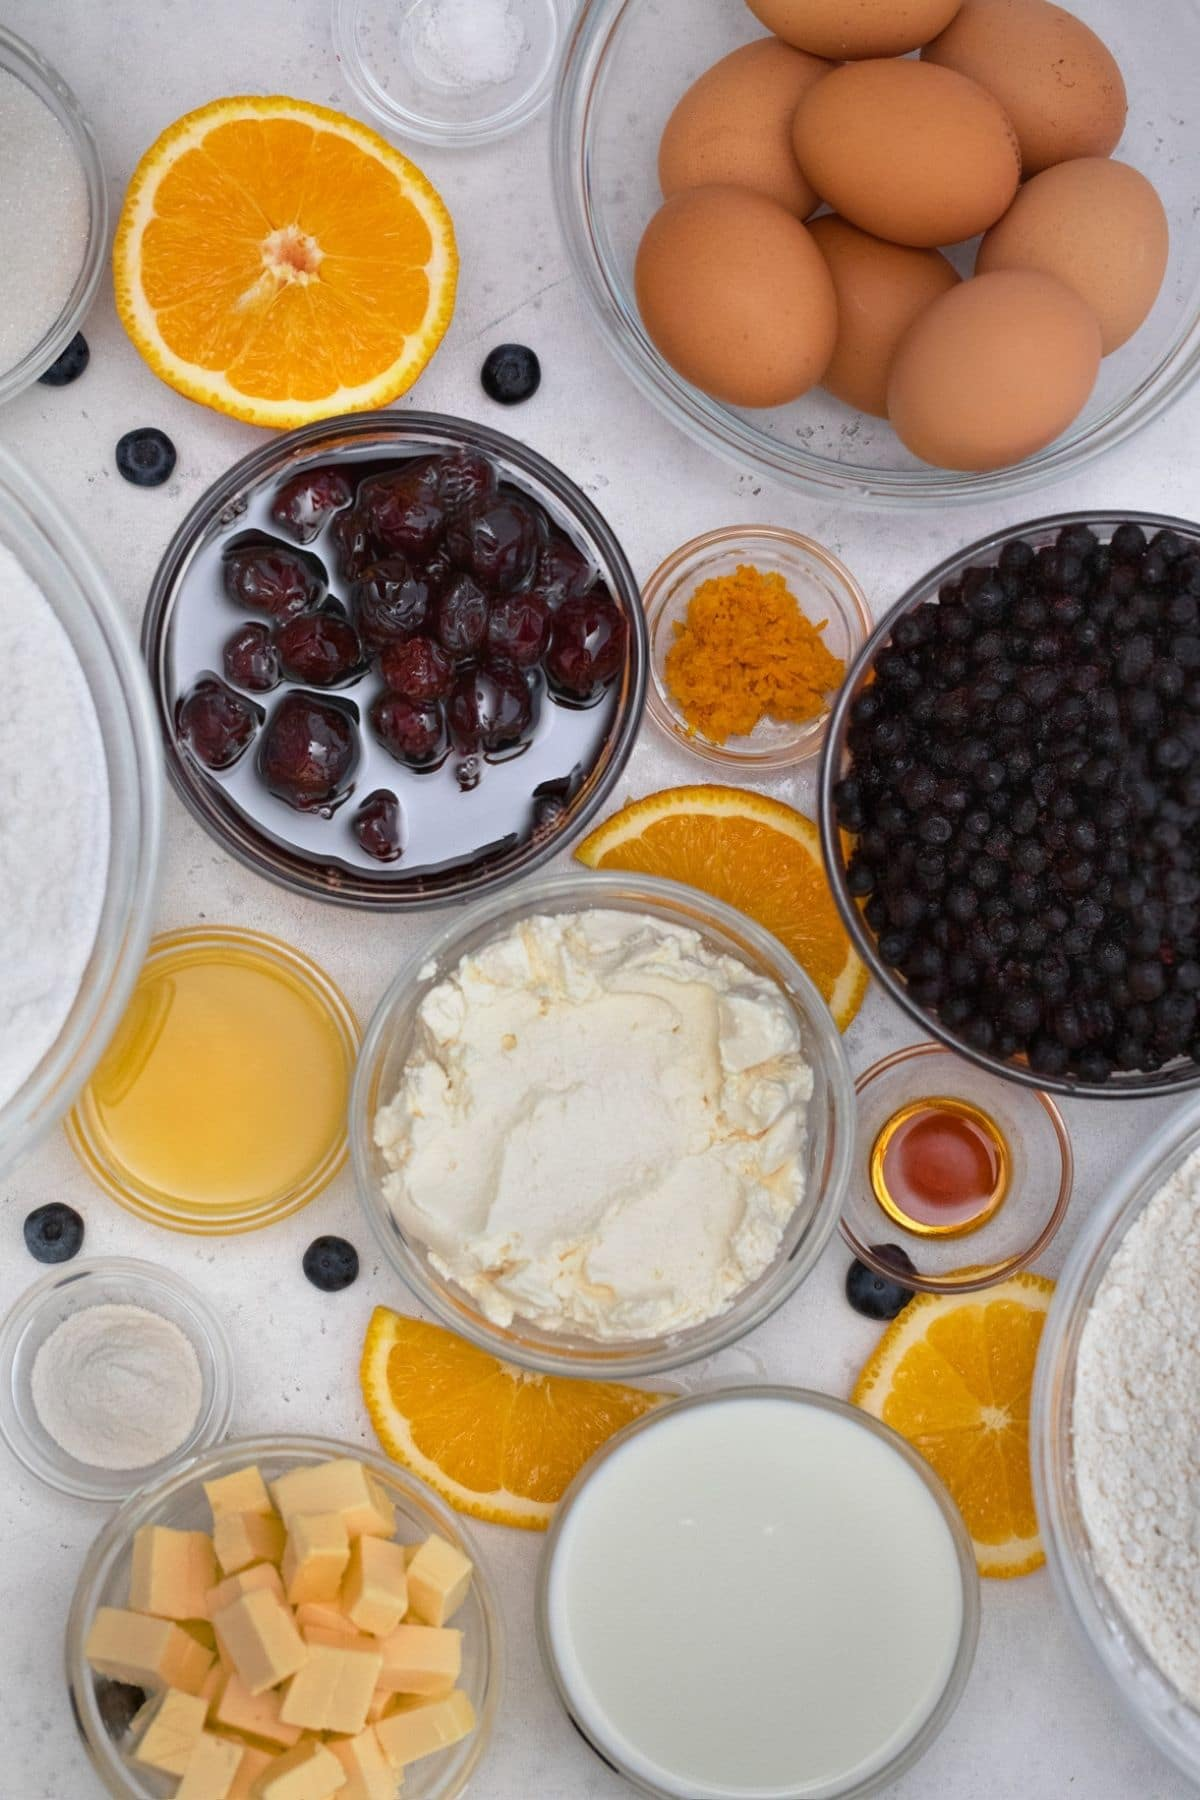 Ingredients for blueberry layer cake in glass bowls on white table